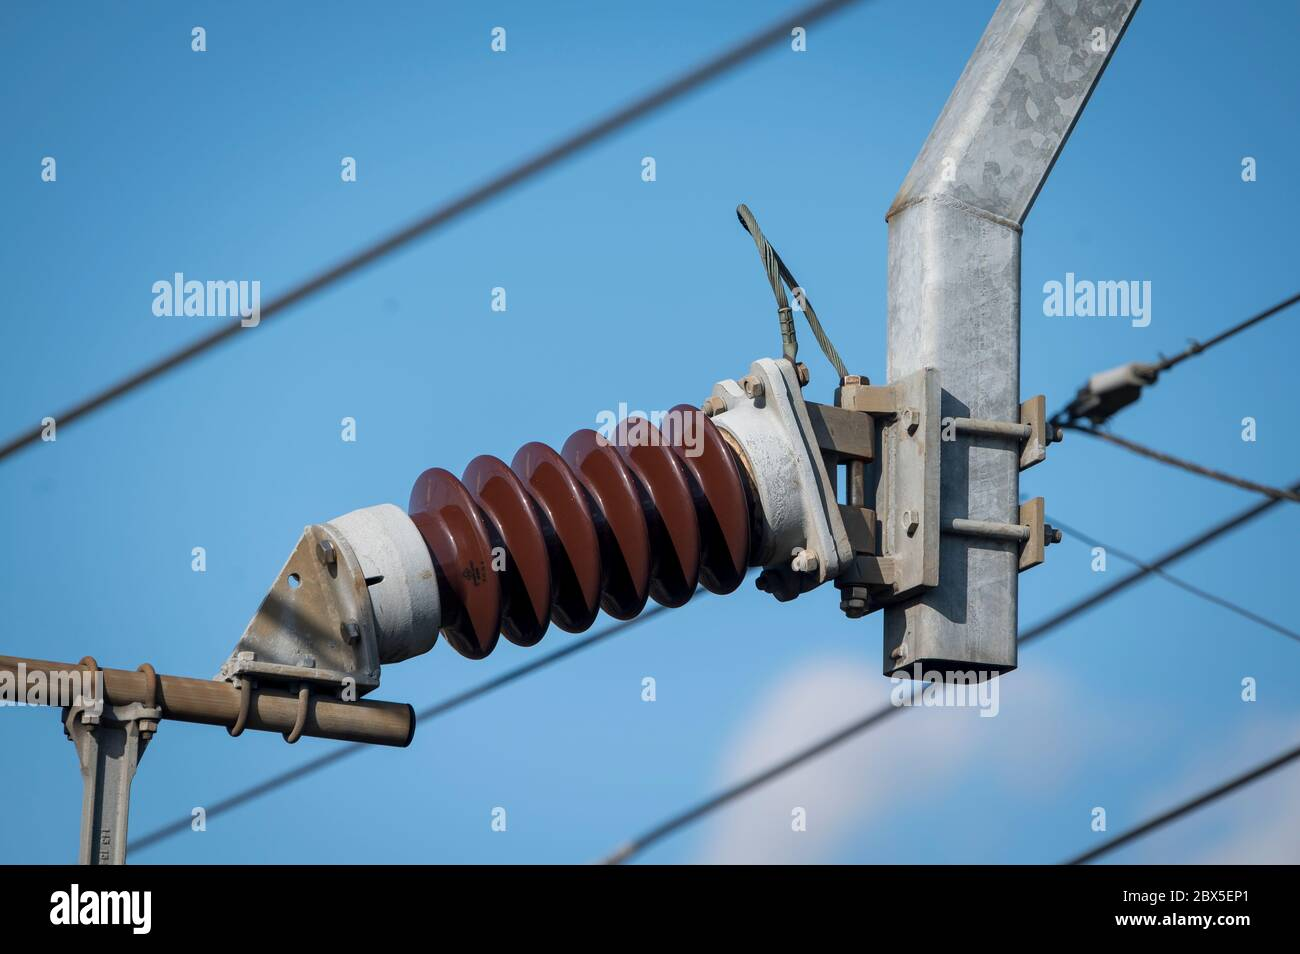 Ceramic insulator and catenary on an electrified railway line in the UK. Stock Photo